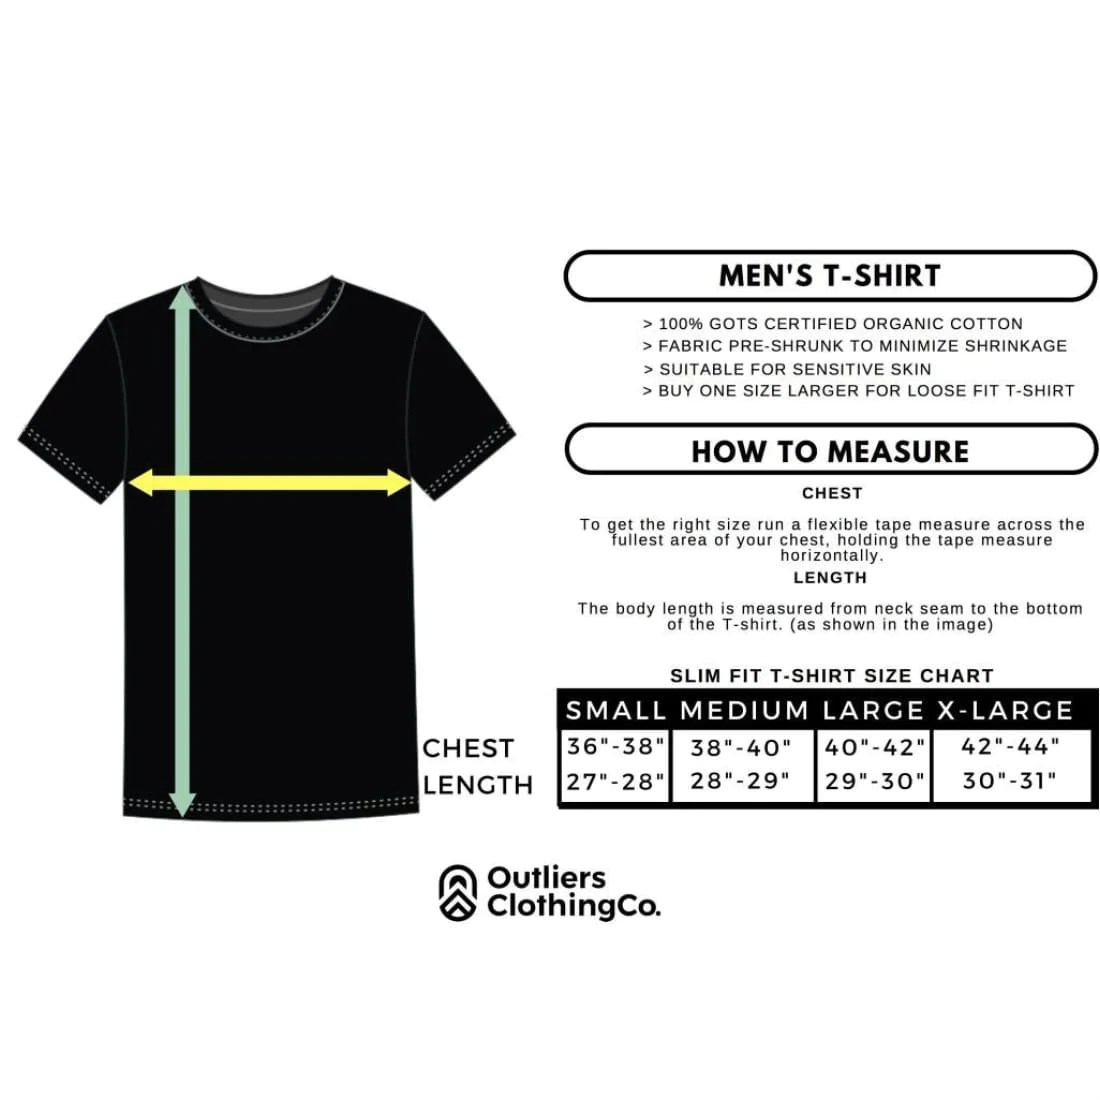 Us polo shirt size chart india also brain hive rh brainhive